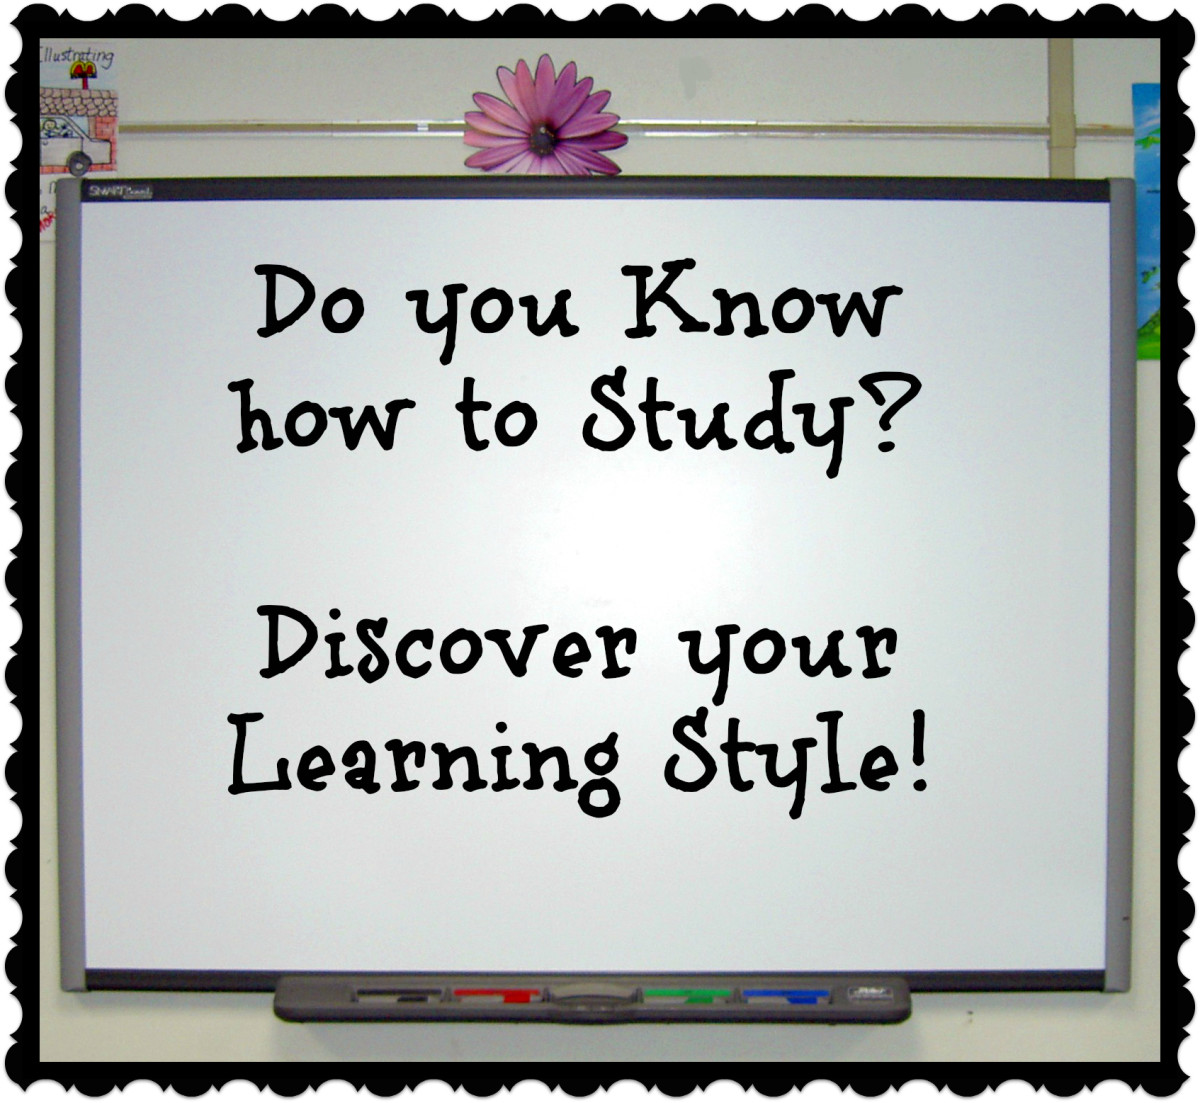 Do you know your learning style?